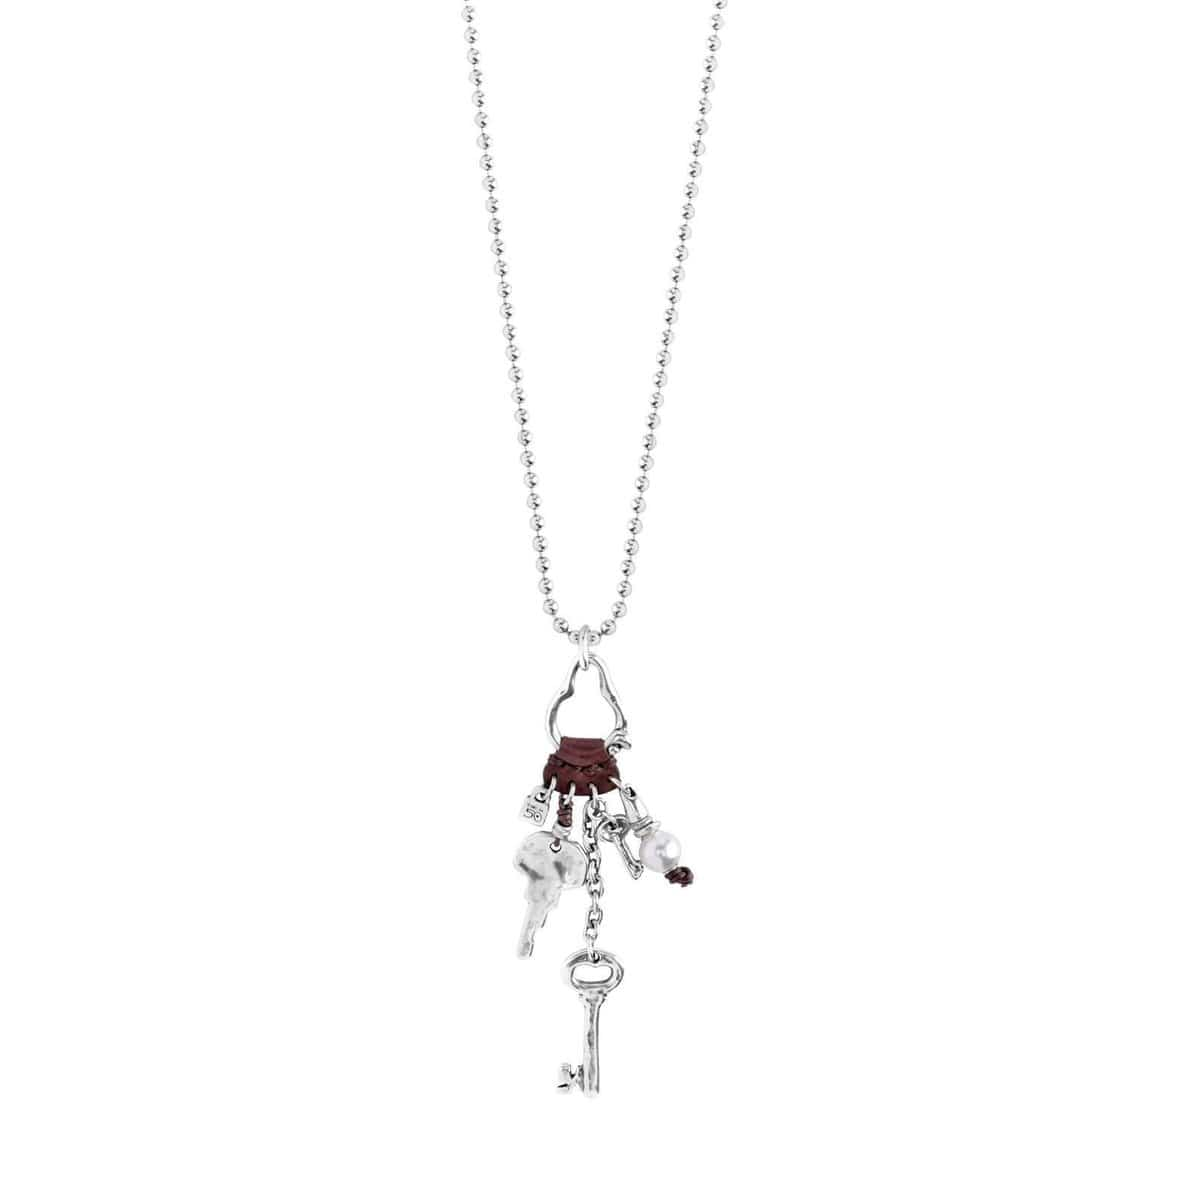 Man Ojito Necklace - COL1124BPLMTL0U - UNO de 50